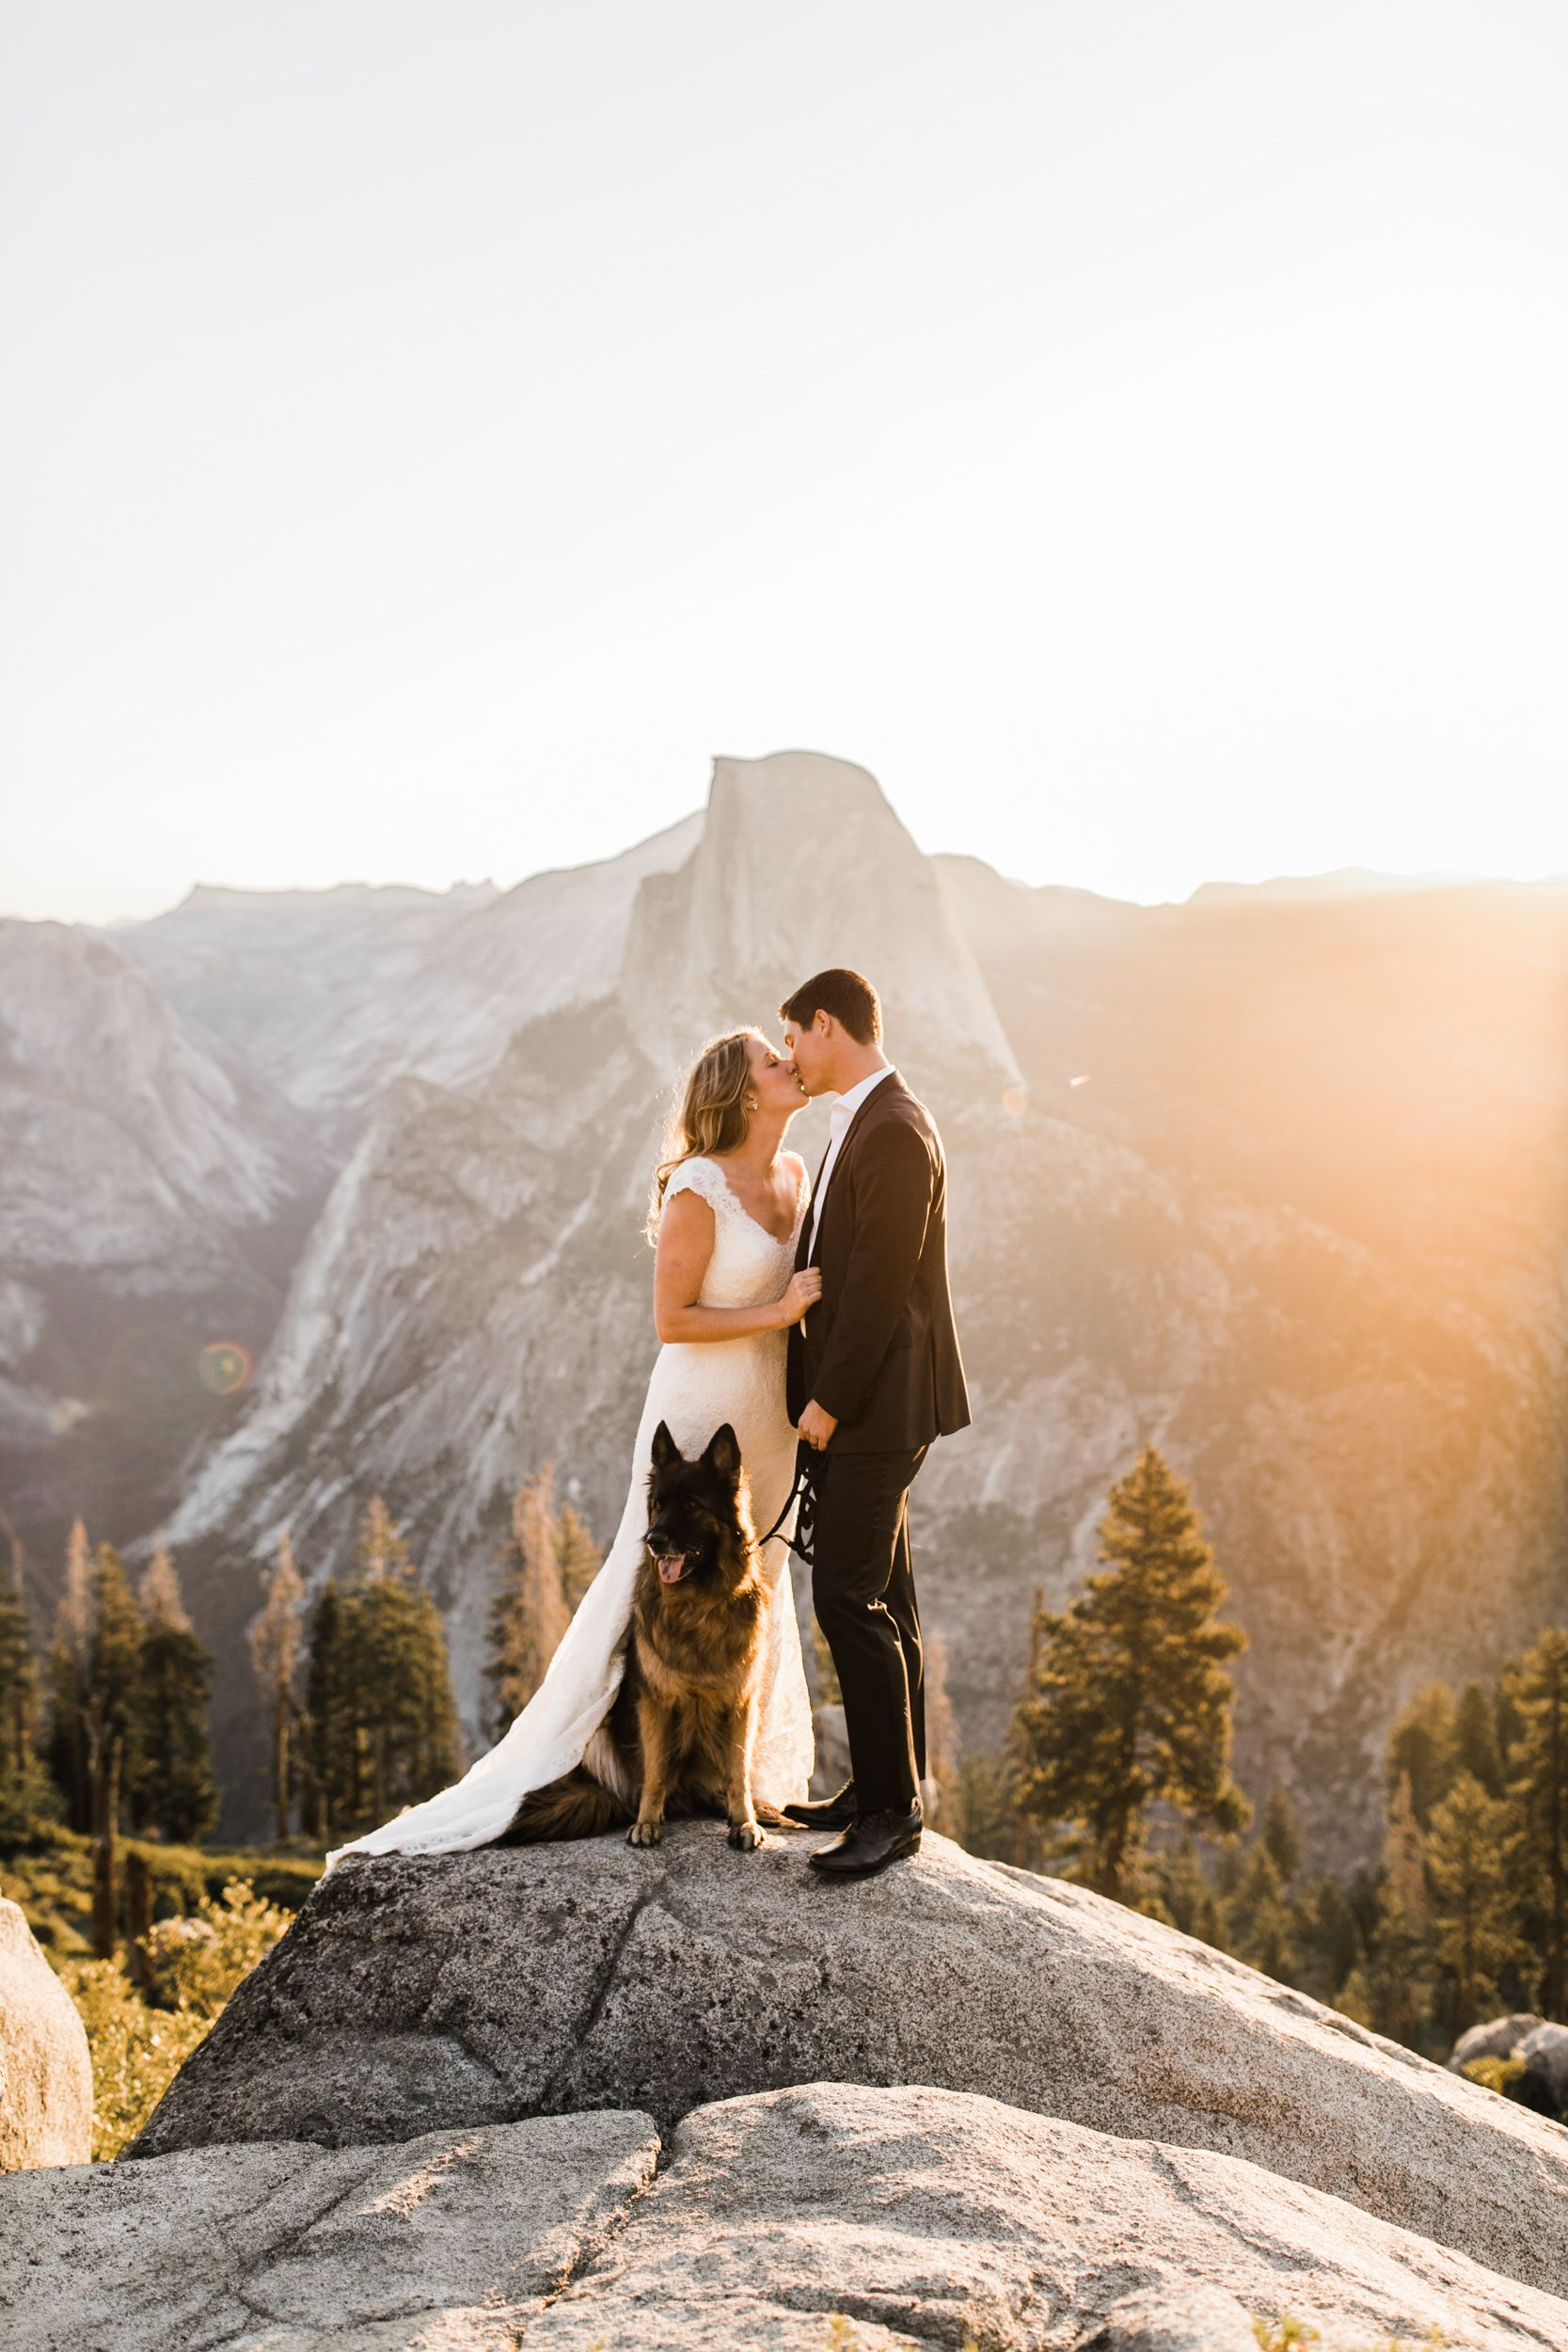 Yosemite Wedding First Look And Portraits National Park Elopement Photographer Adventure Wedding Elopement Photographers In Moab Yosemite And Beyond T Yosemite Wedding Yosemite Adventure Wedding